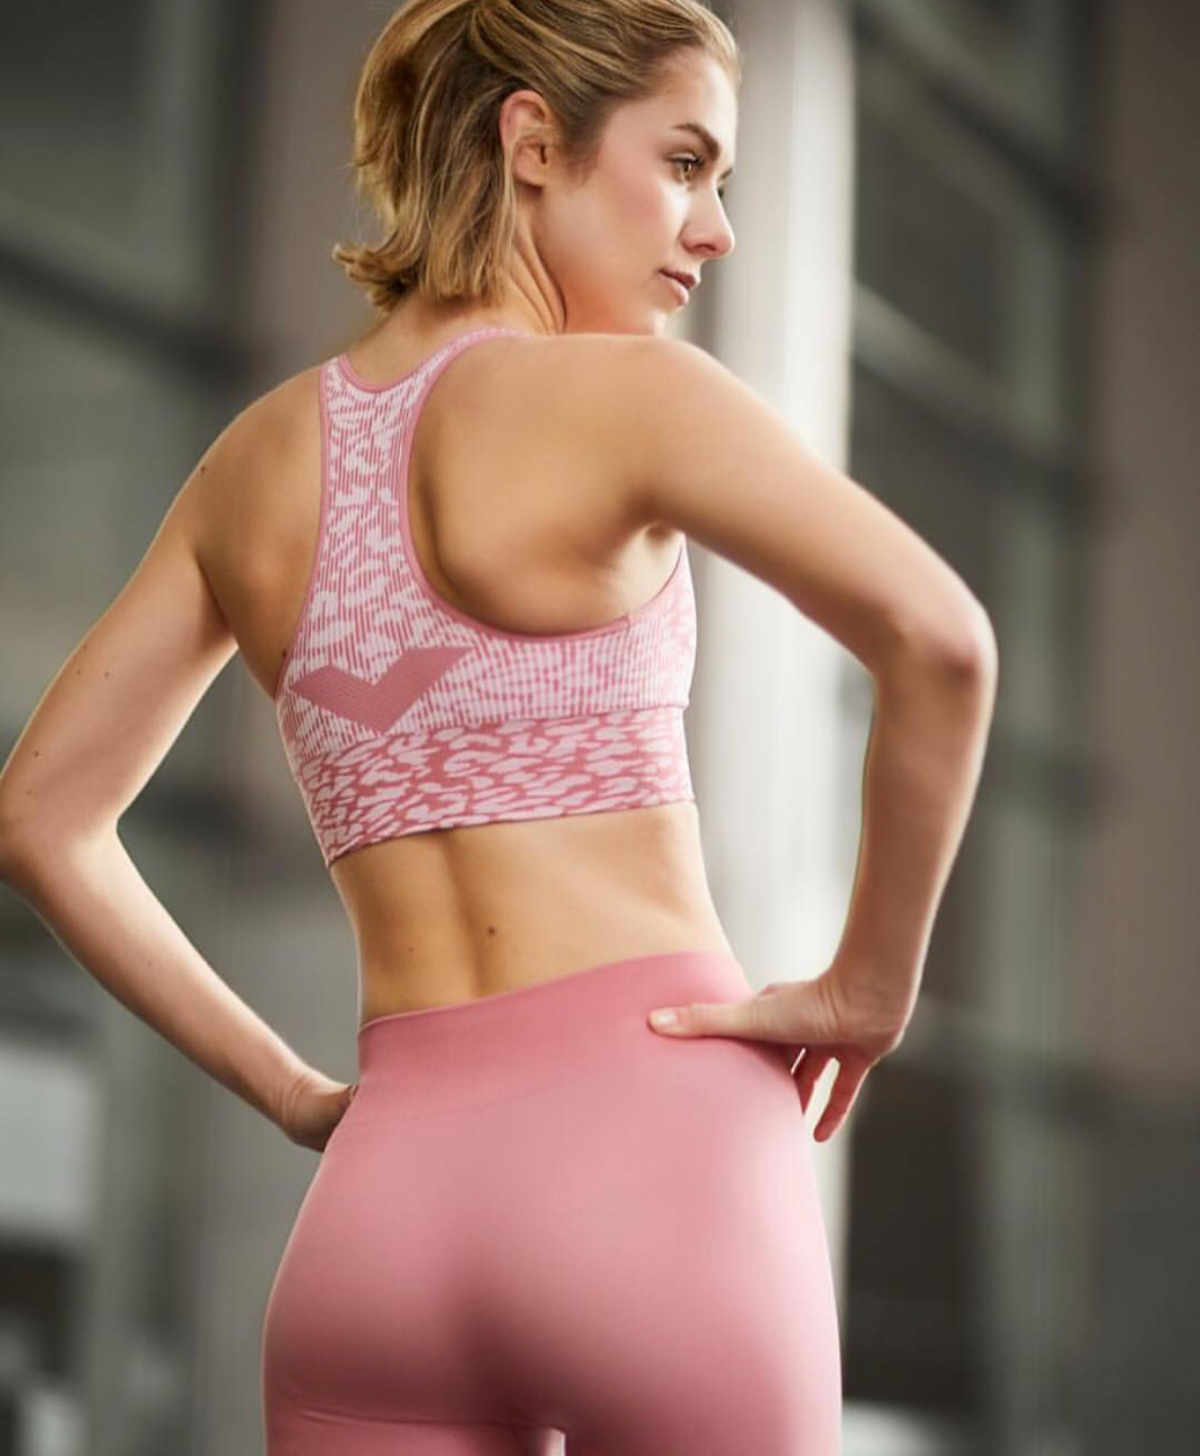 woman wearing pink fitness attire